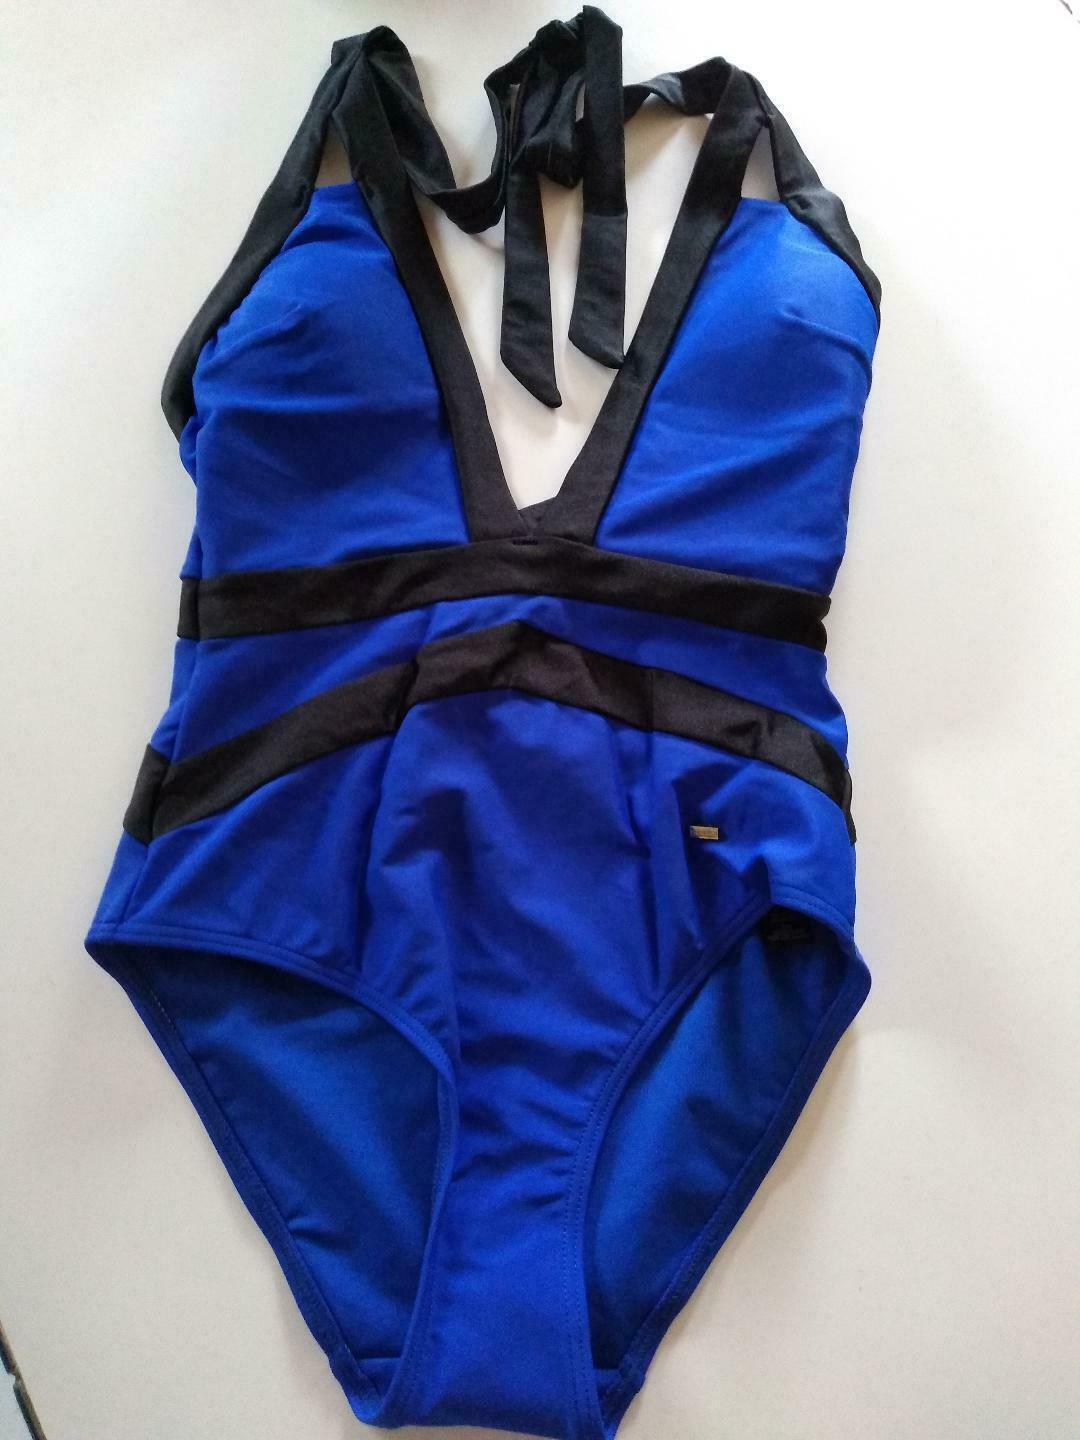 Ted Baker London Bright Blue Triangle Cut Outs One Piece SwimSuit Size 1/XS US